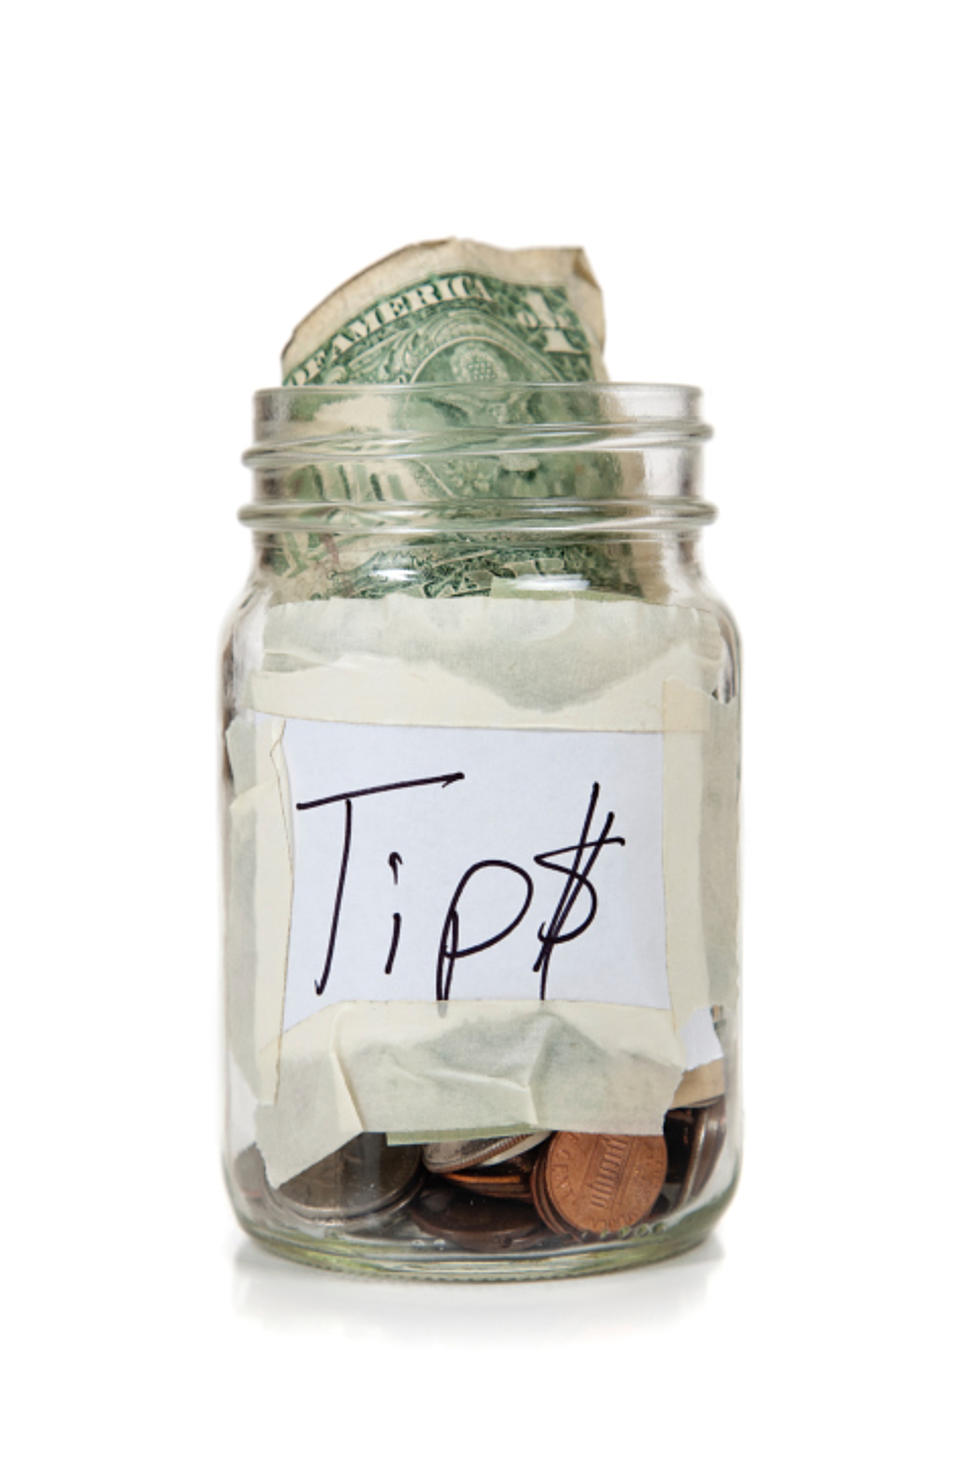 Should You Tip Meijer Shipt Shoppers? How Much? [Poll]